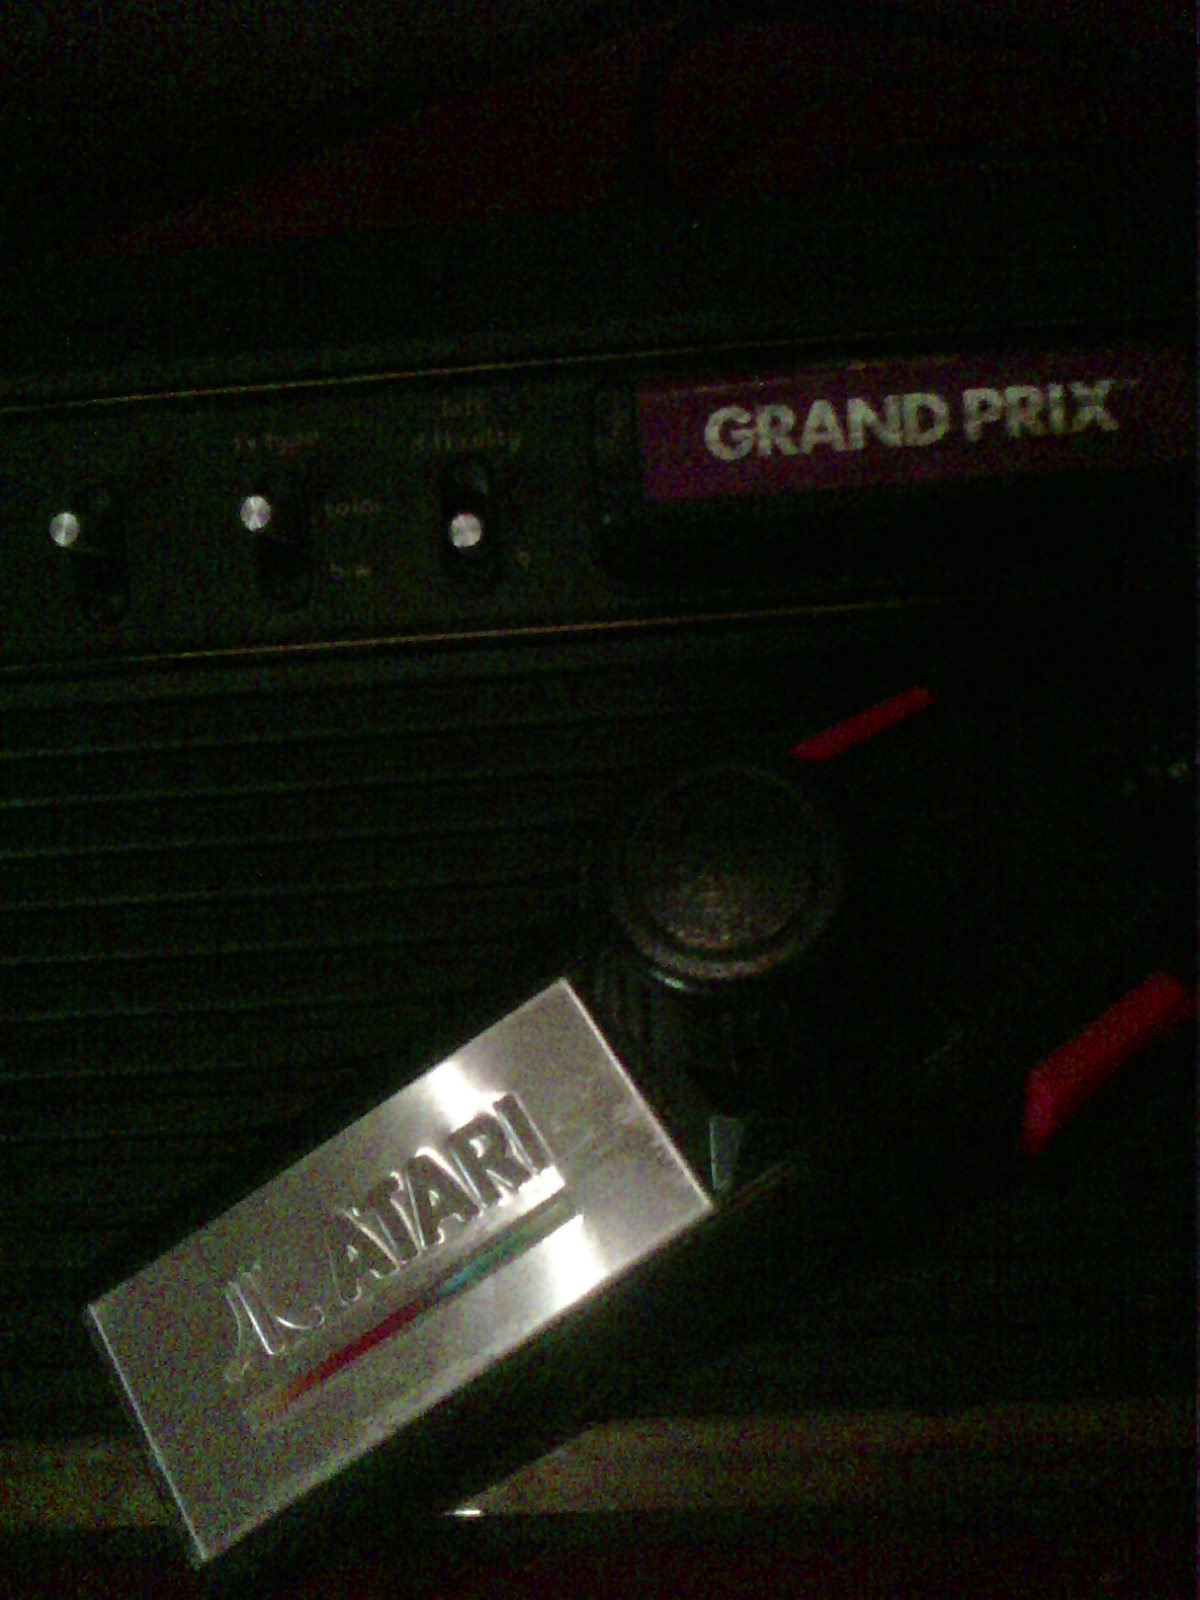 Grand Prix: Game 1 time of 0:38:20